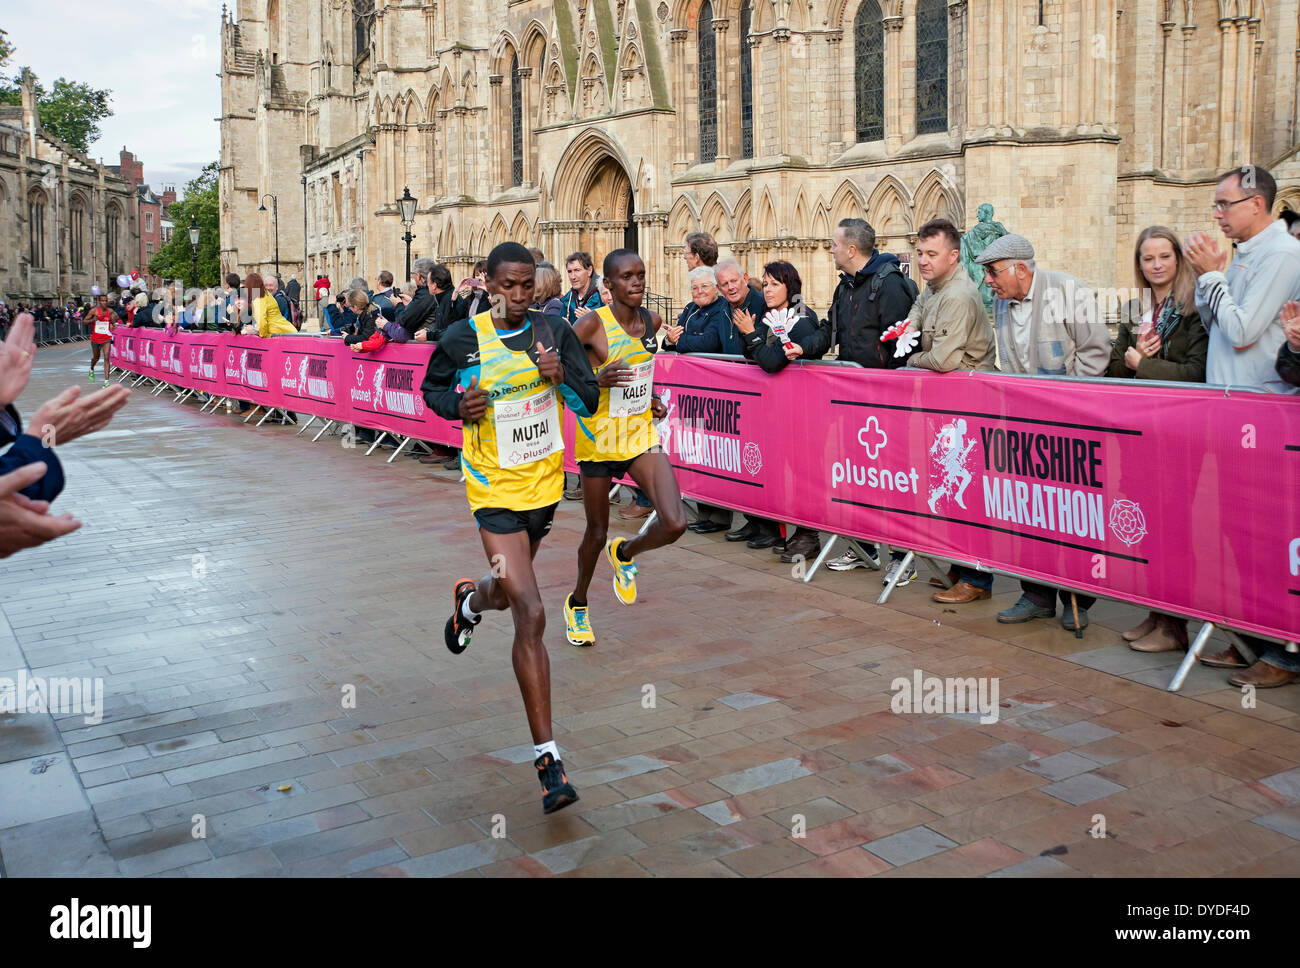 Elite Kenyan athletes John Mutai and John Kales run past York Minster in the first Plusnet Yorkshire Marathon. - Stock Image